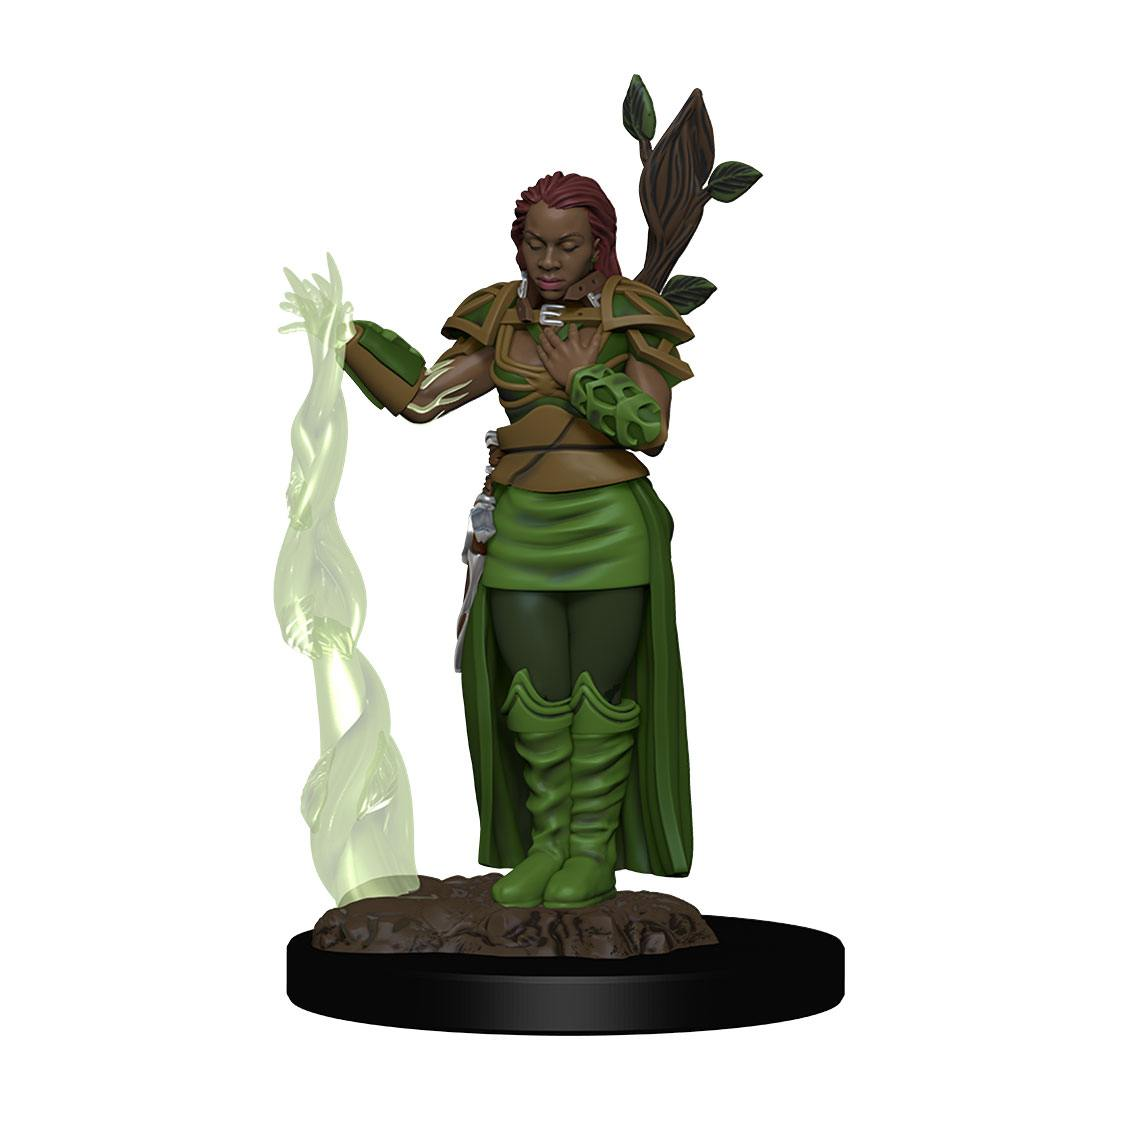 D&D Icons of the Realms Premium Miniature pre-painted Human Female Druid Case (6)